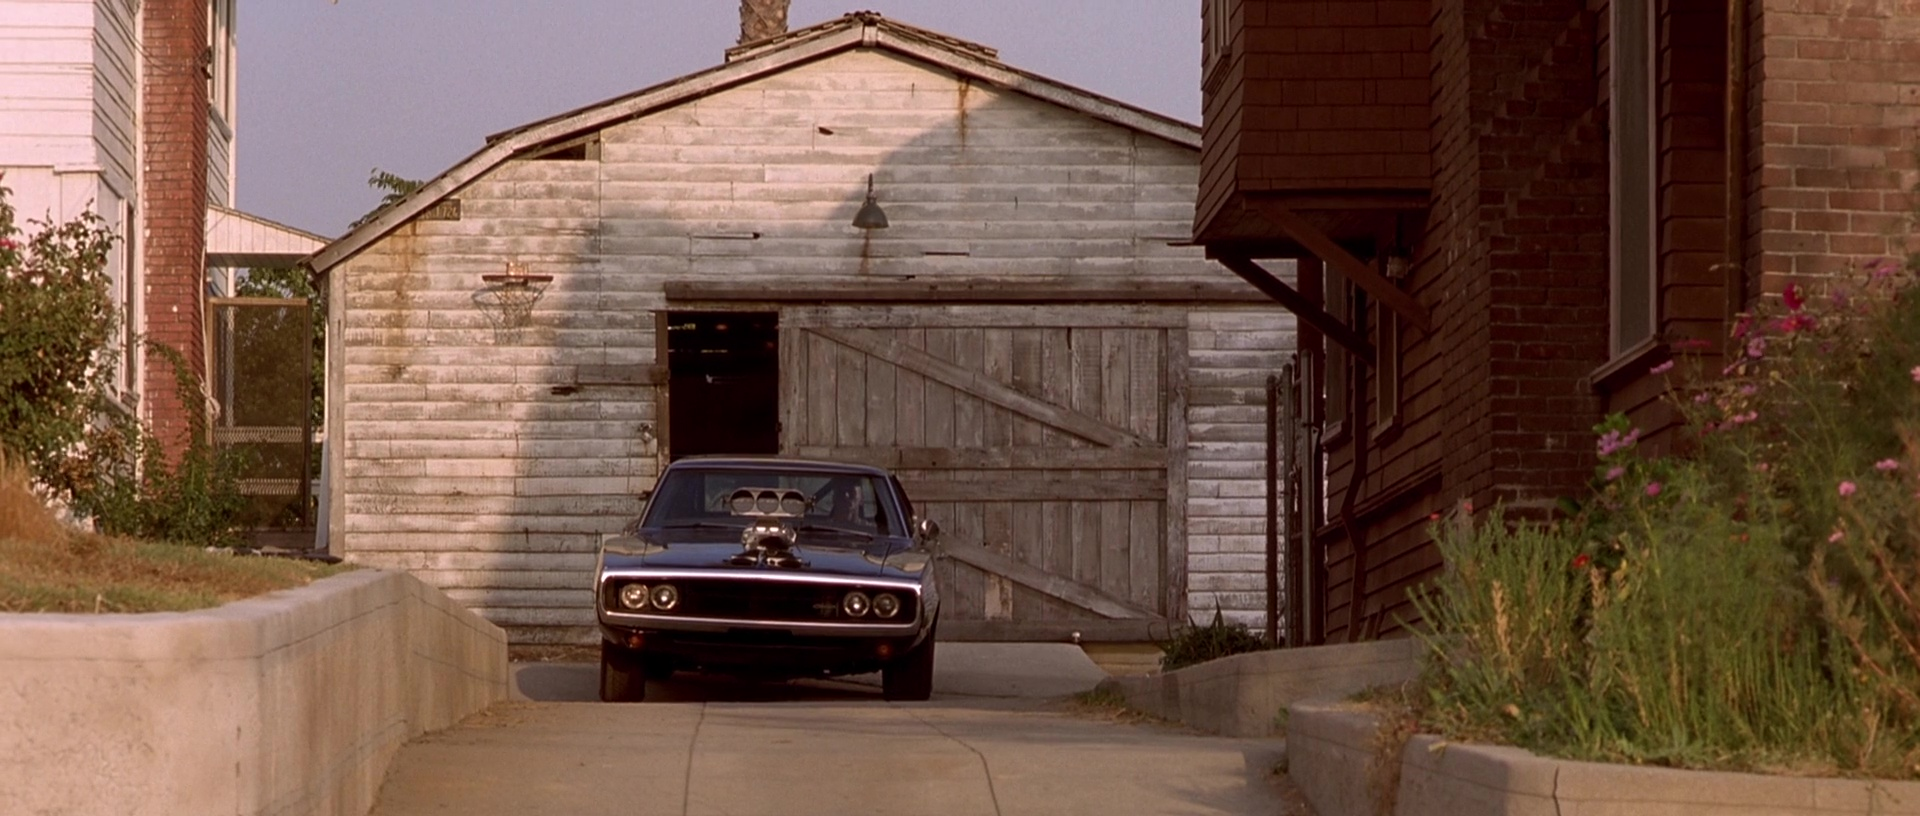 Dom's Charger - 1327 Driveway.jpg